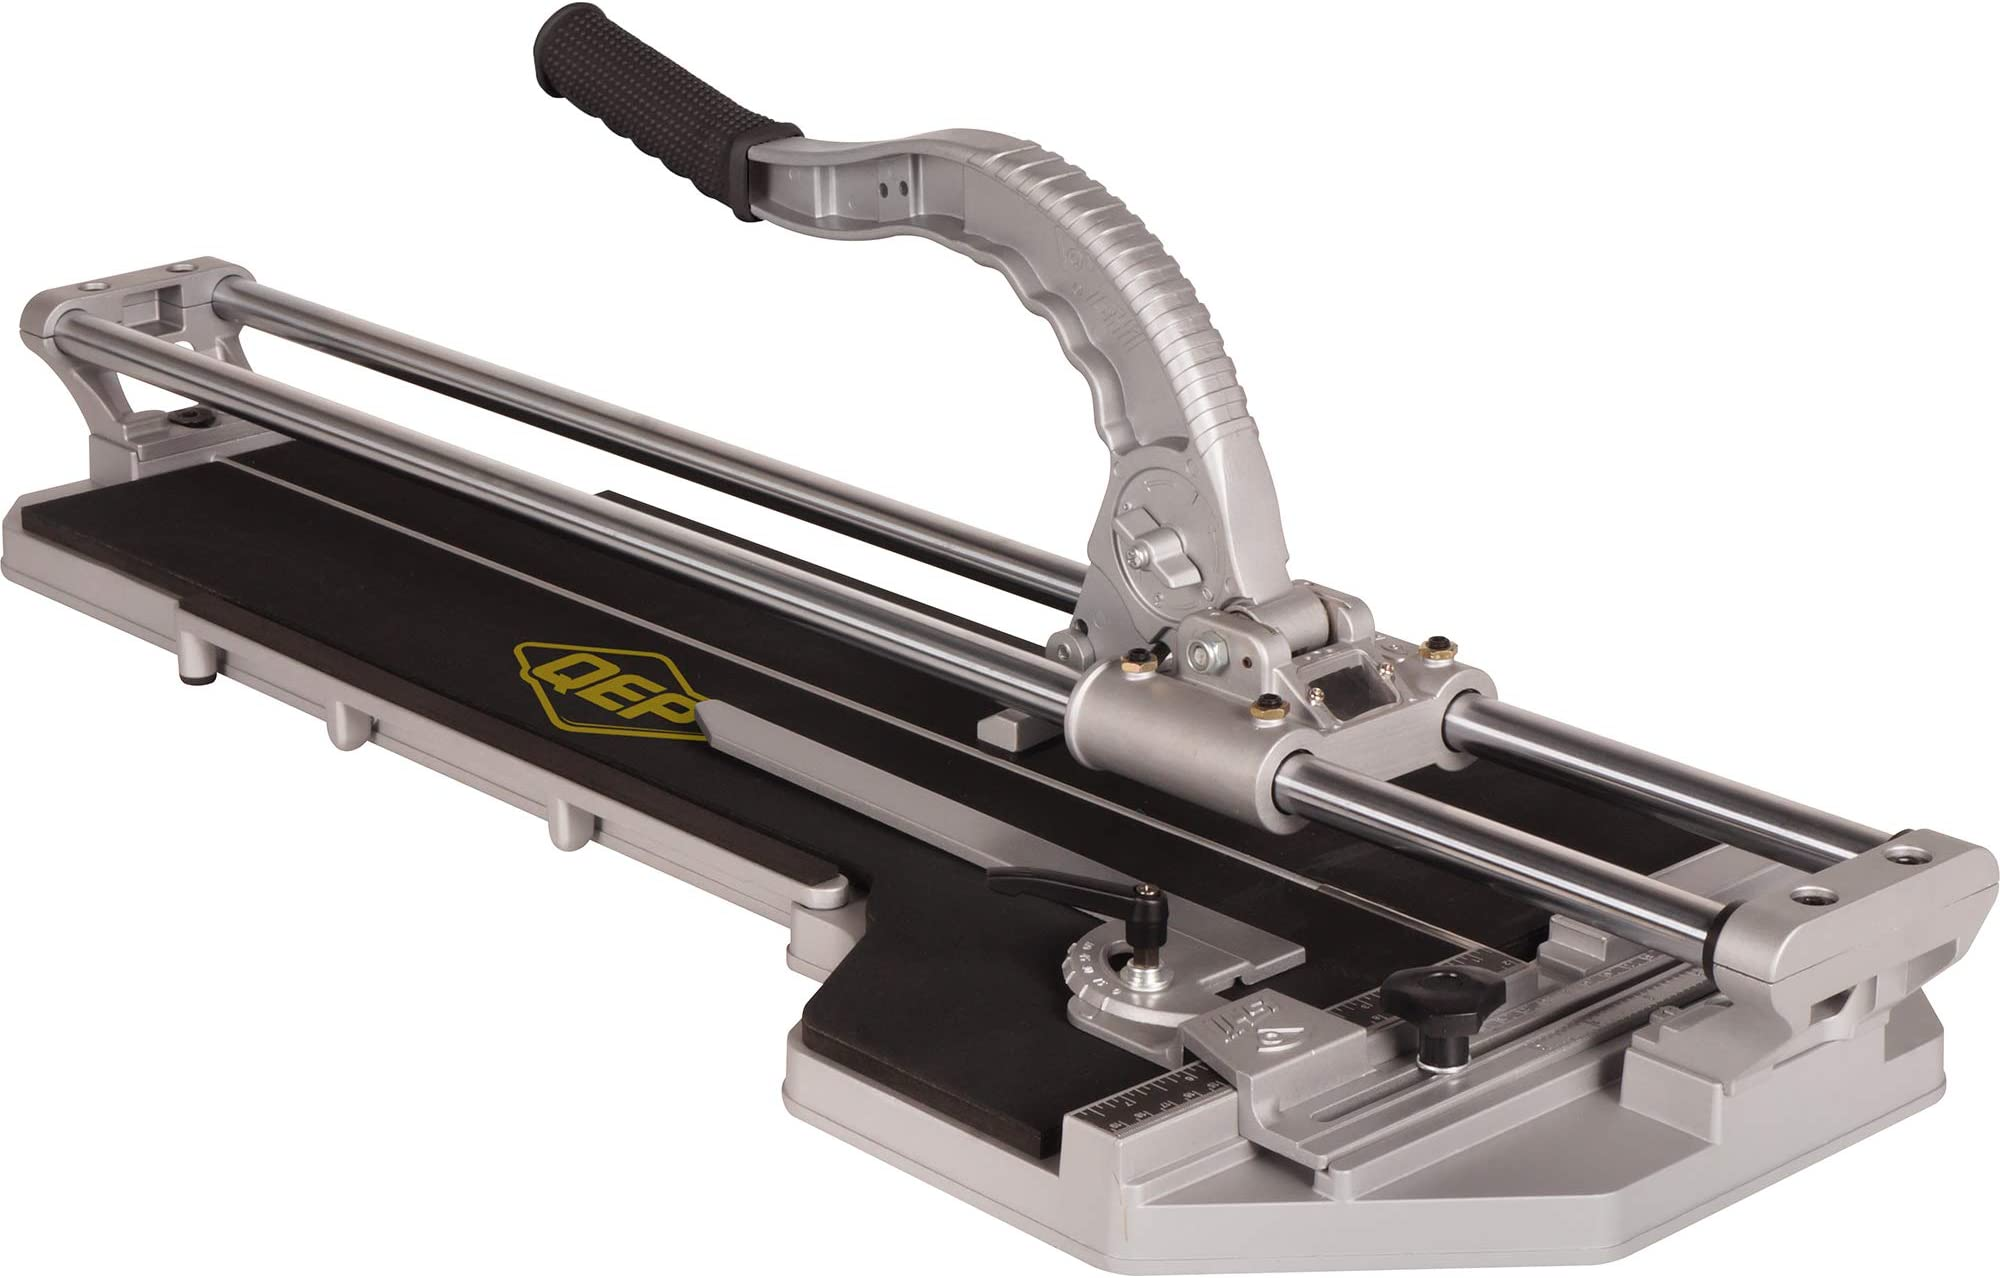 QEP 10800 28-Inch Rip and 20-Inch Diagonal Professional Porcelain Tile Cutter